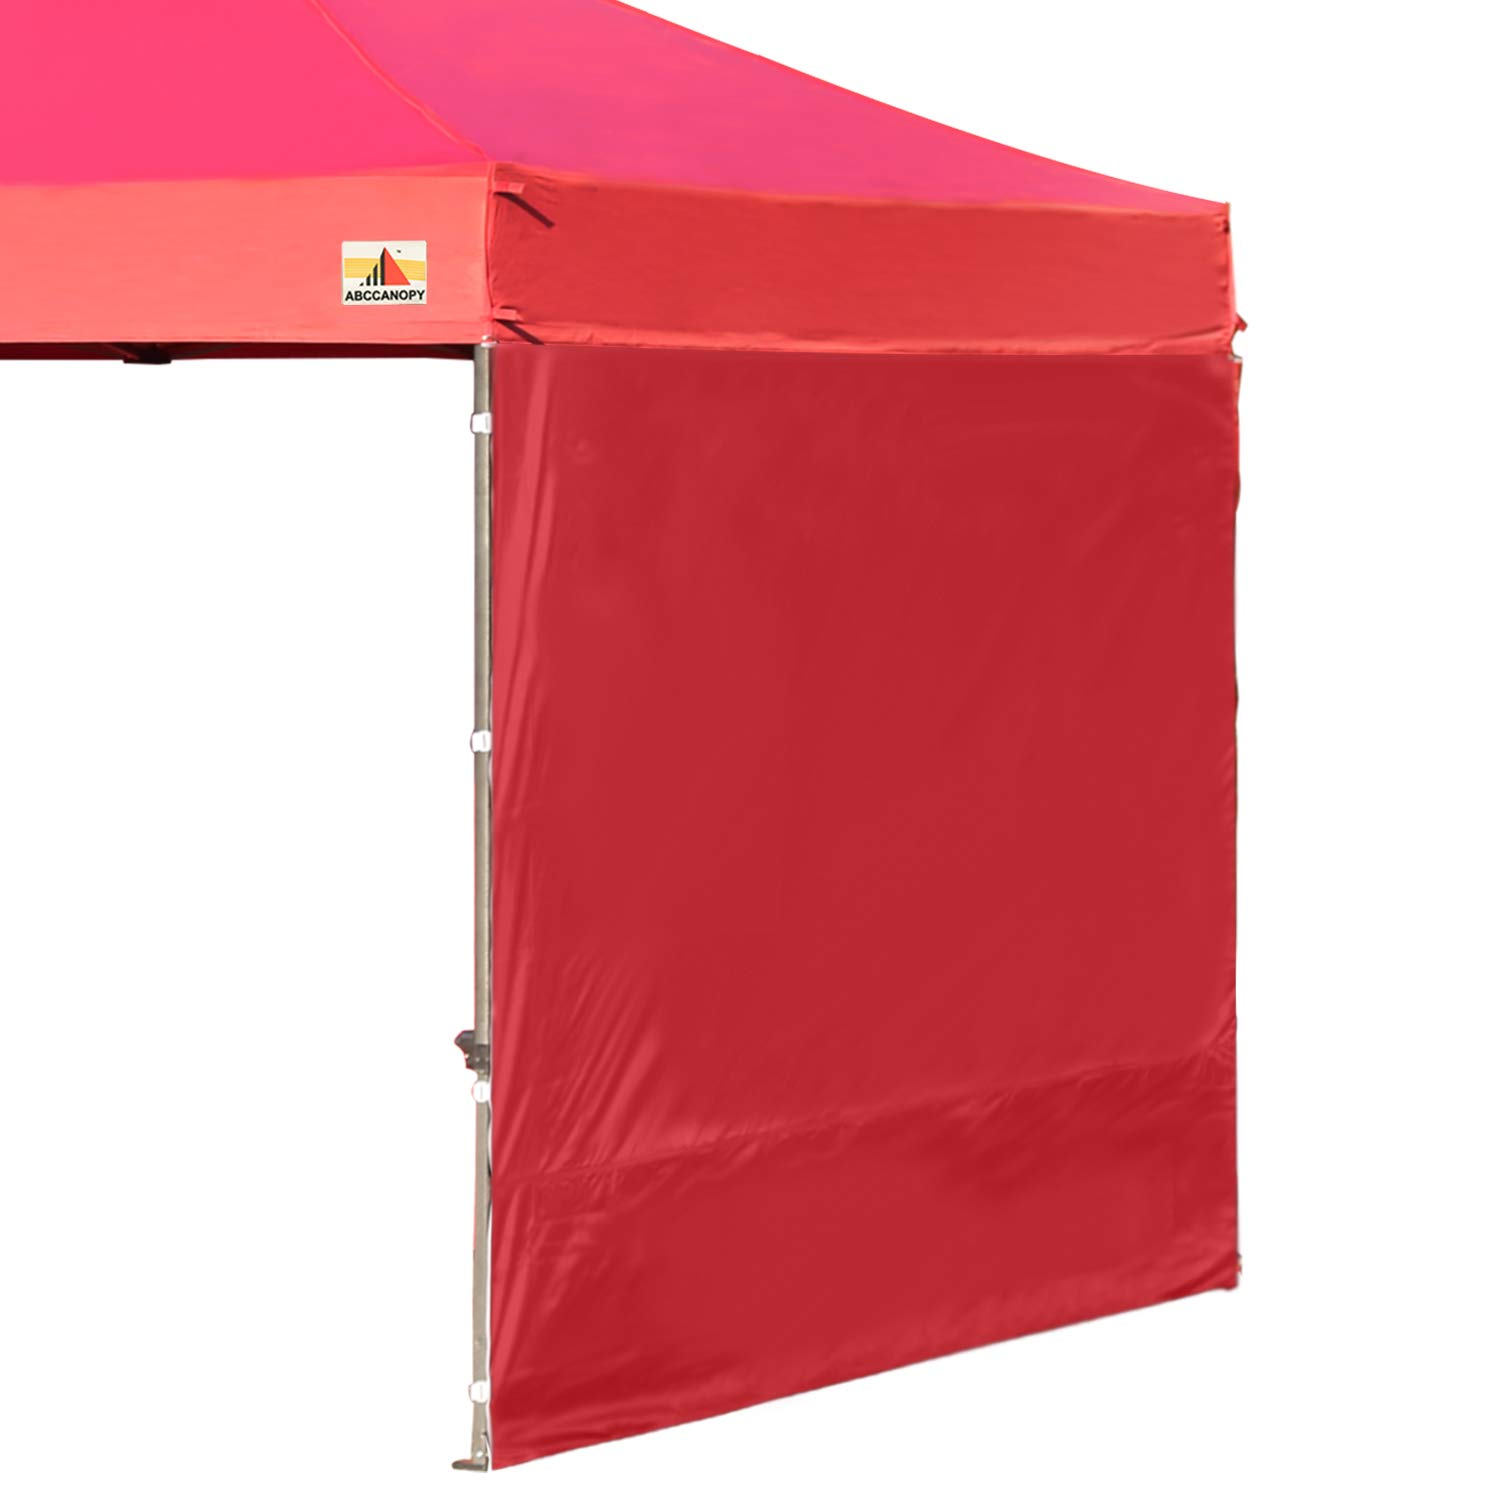 ABCCANOPY 15+Colors 10' Sun Wall for 10'x 10' Straight Leg pop up Canopy Tent, 10' Sidewall kit (1 Panel) with Truss Straps, (Burgundy) by ABCCANOPY